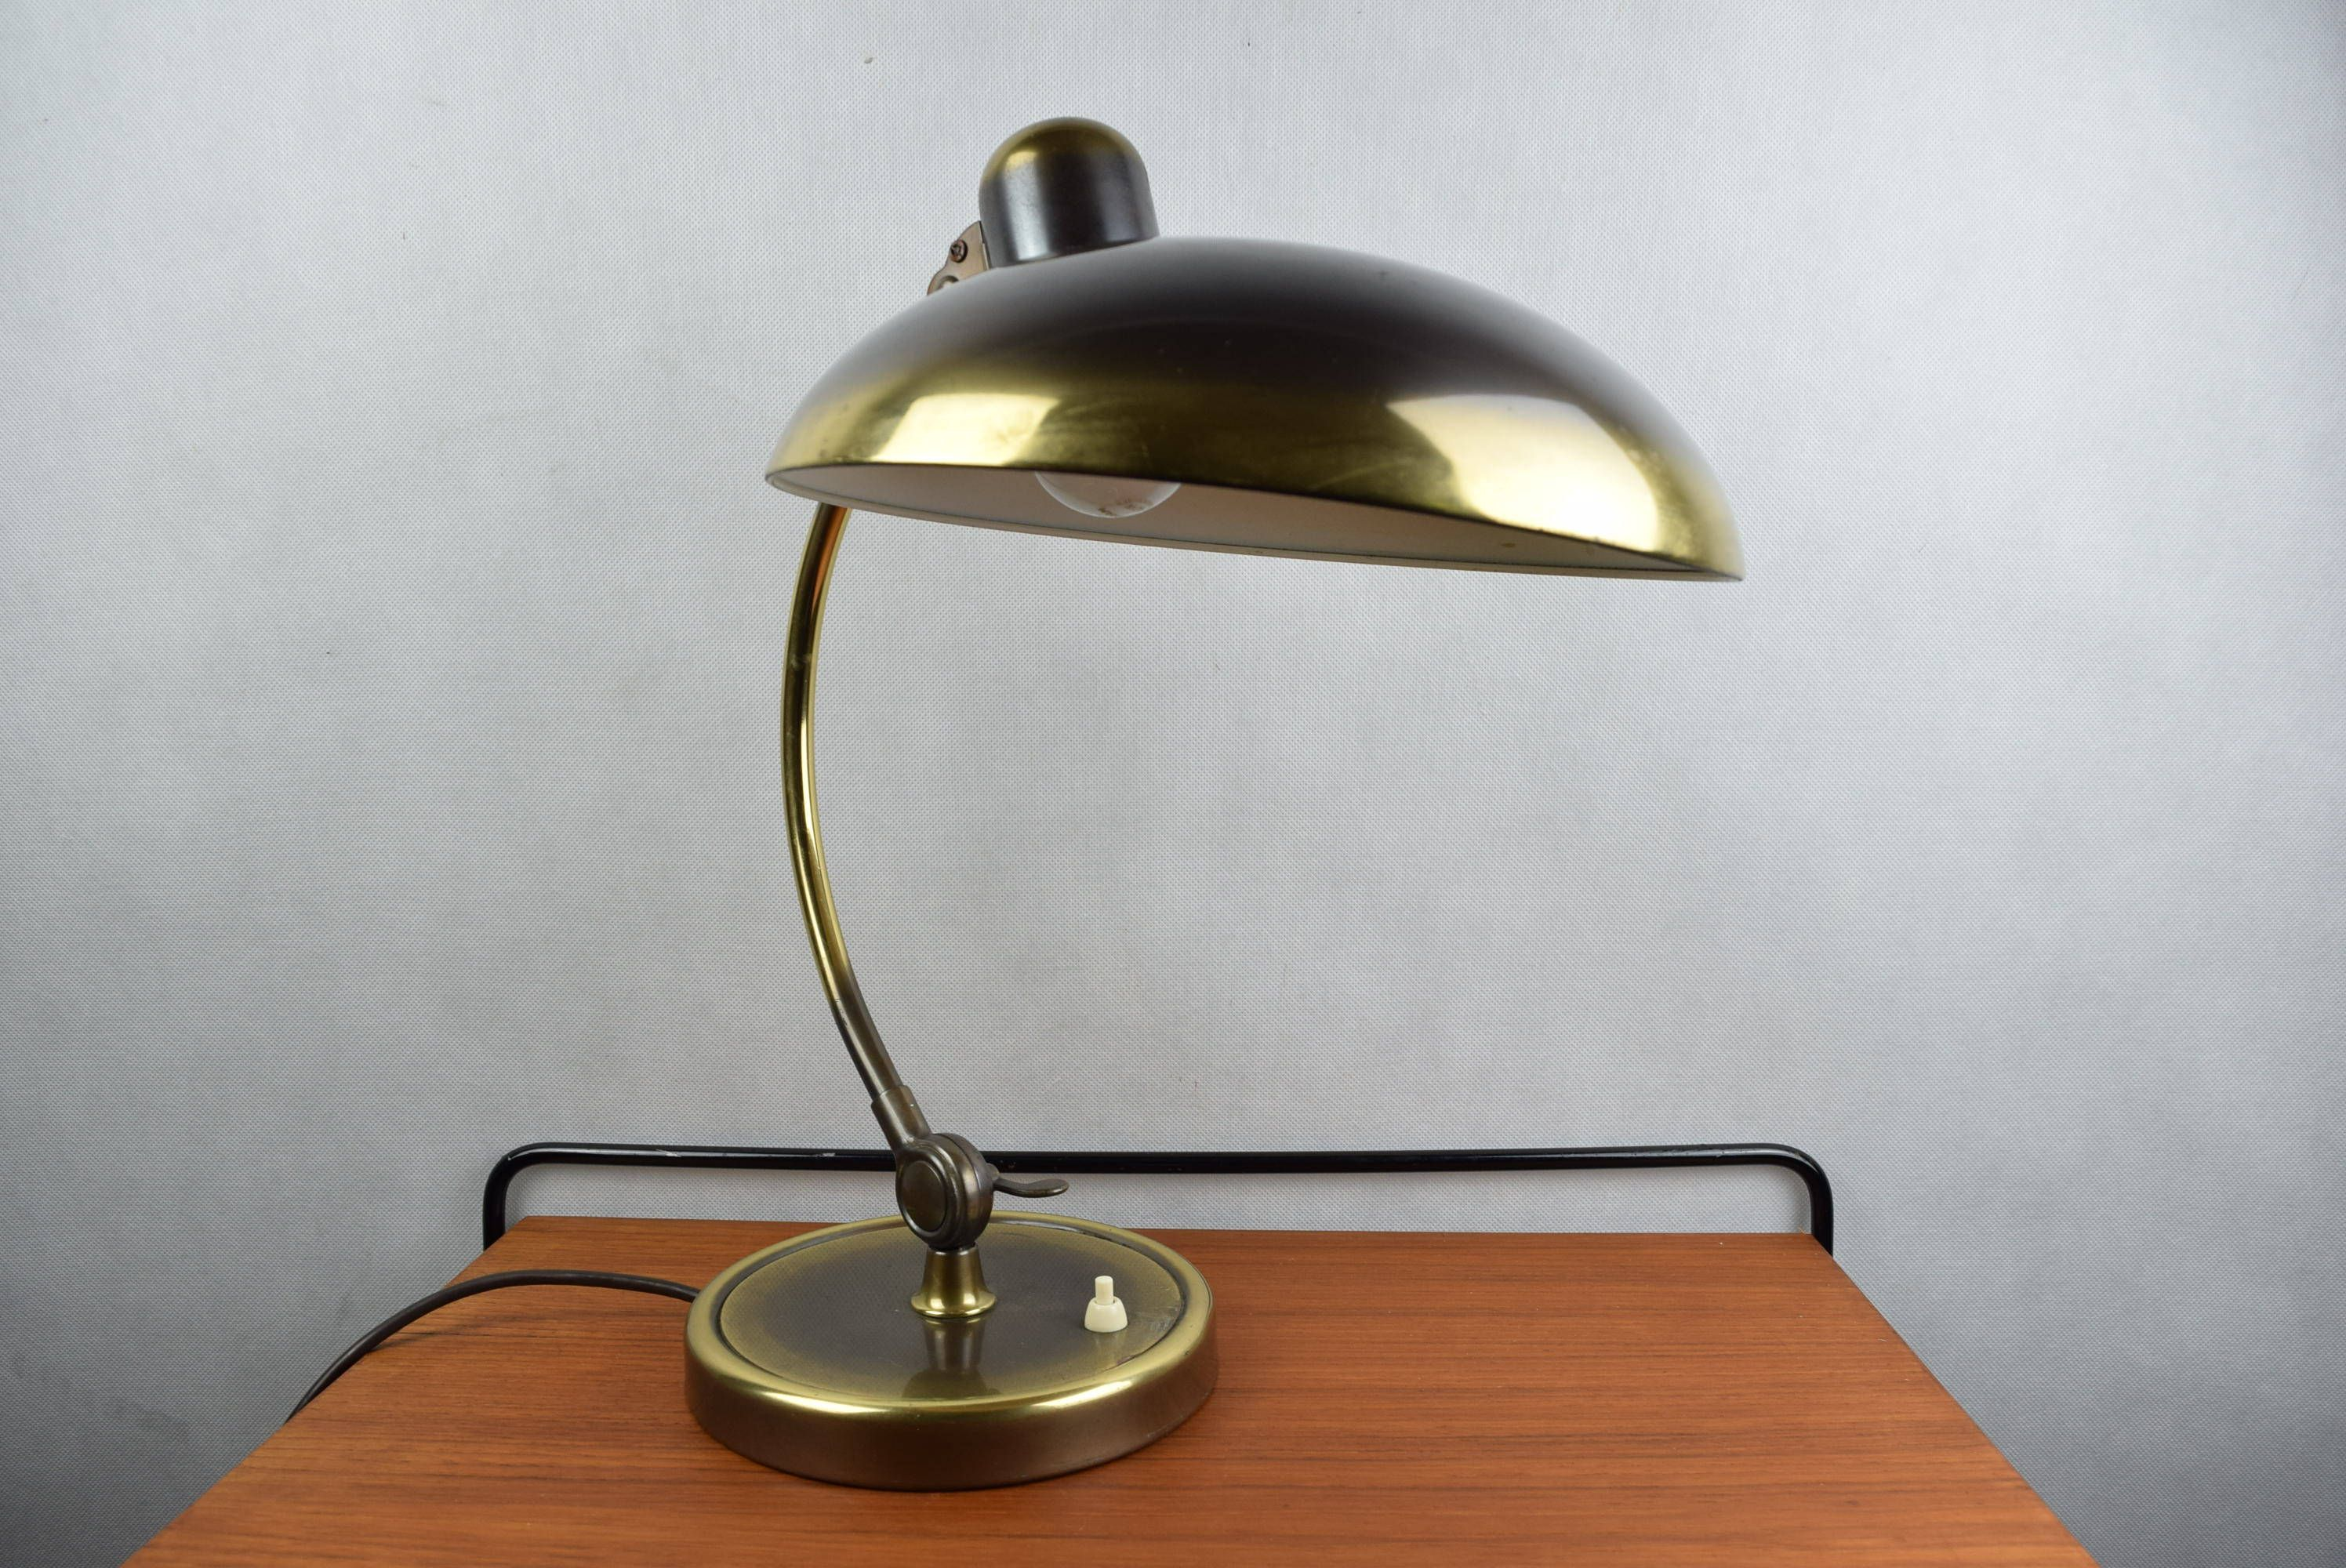 Original Bauhaus Modernist Table Lamp Desk Light Christian Dell